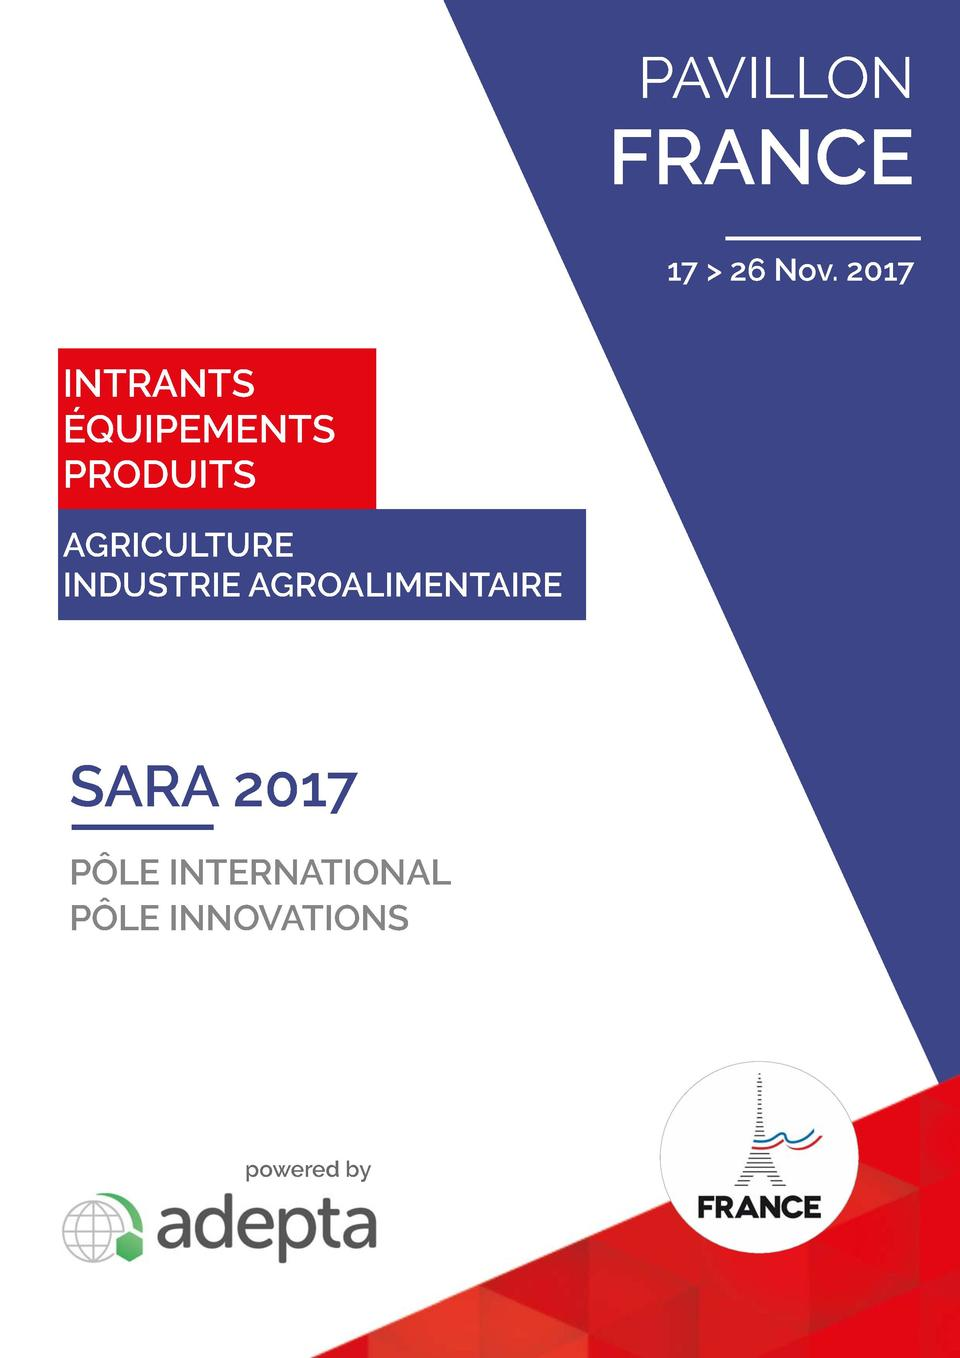 PAVILLON  FRANCE 17   26 Nov. 2017  INTRANTS   QUIPEMENTS PRODUITS AGRICULTURE INDUSTRIE AGROALIMENTAIRE  SARA 2017 P  LE ...